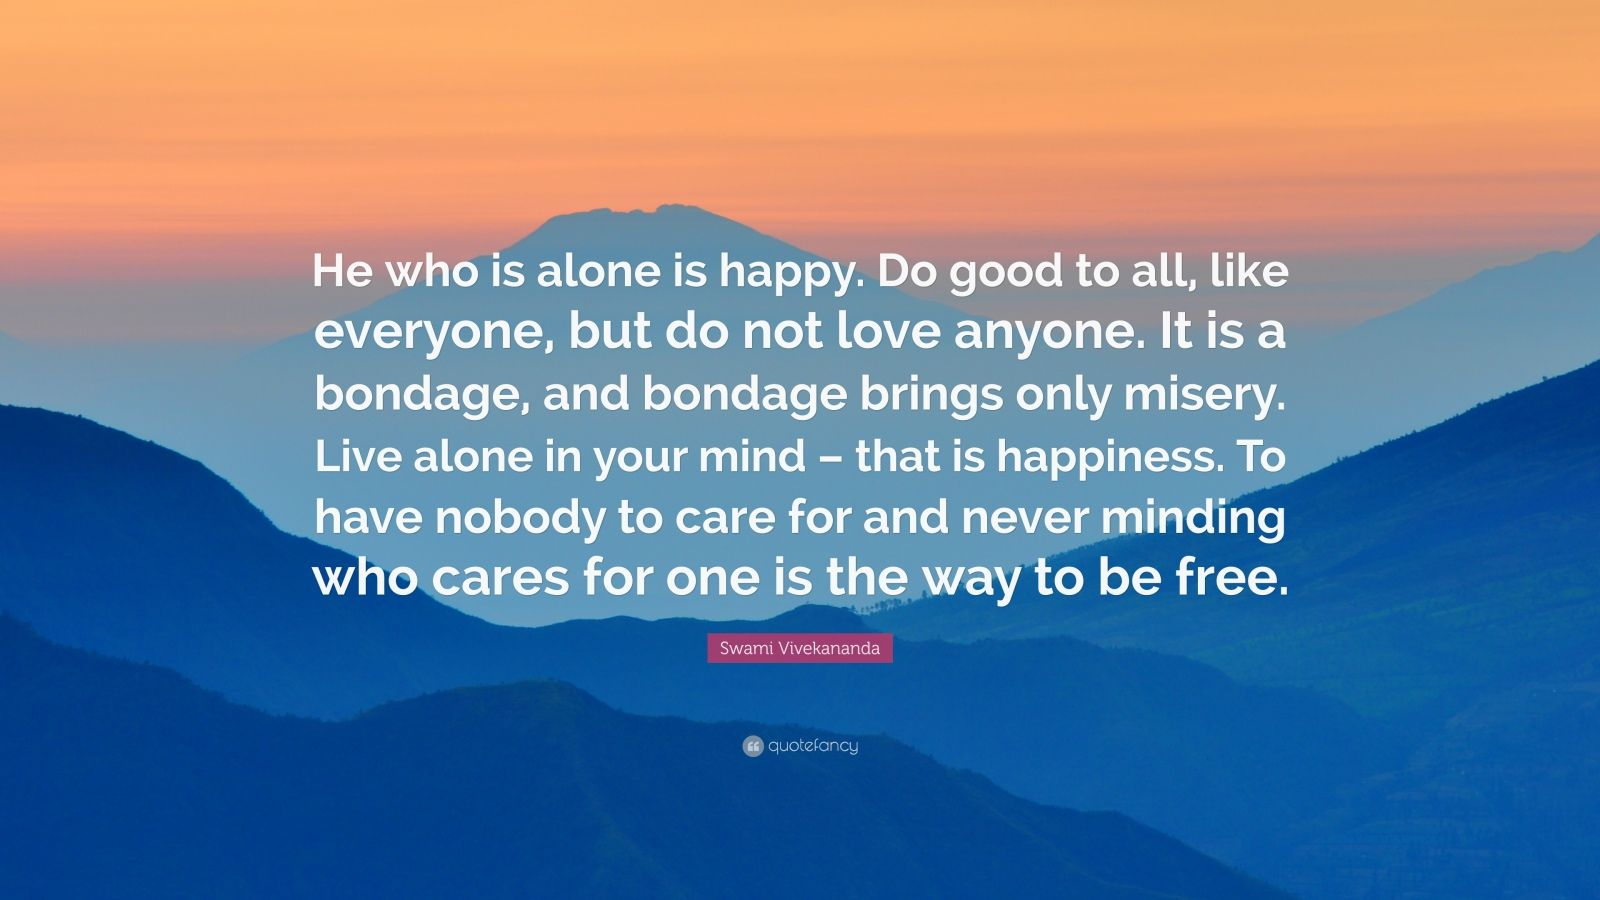 "Swami Vivekananda Quote: ""He who is alone is happy. Do good to all, like everyone, but do not love anyone. It is a bondage, and bondage brings only misery. Live alone in your mind – that is happiness. To have nobody to care for and never minding who cares for one is the way to be free."""